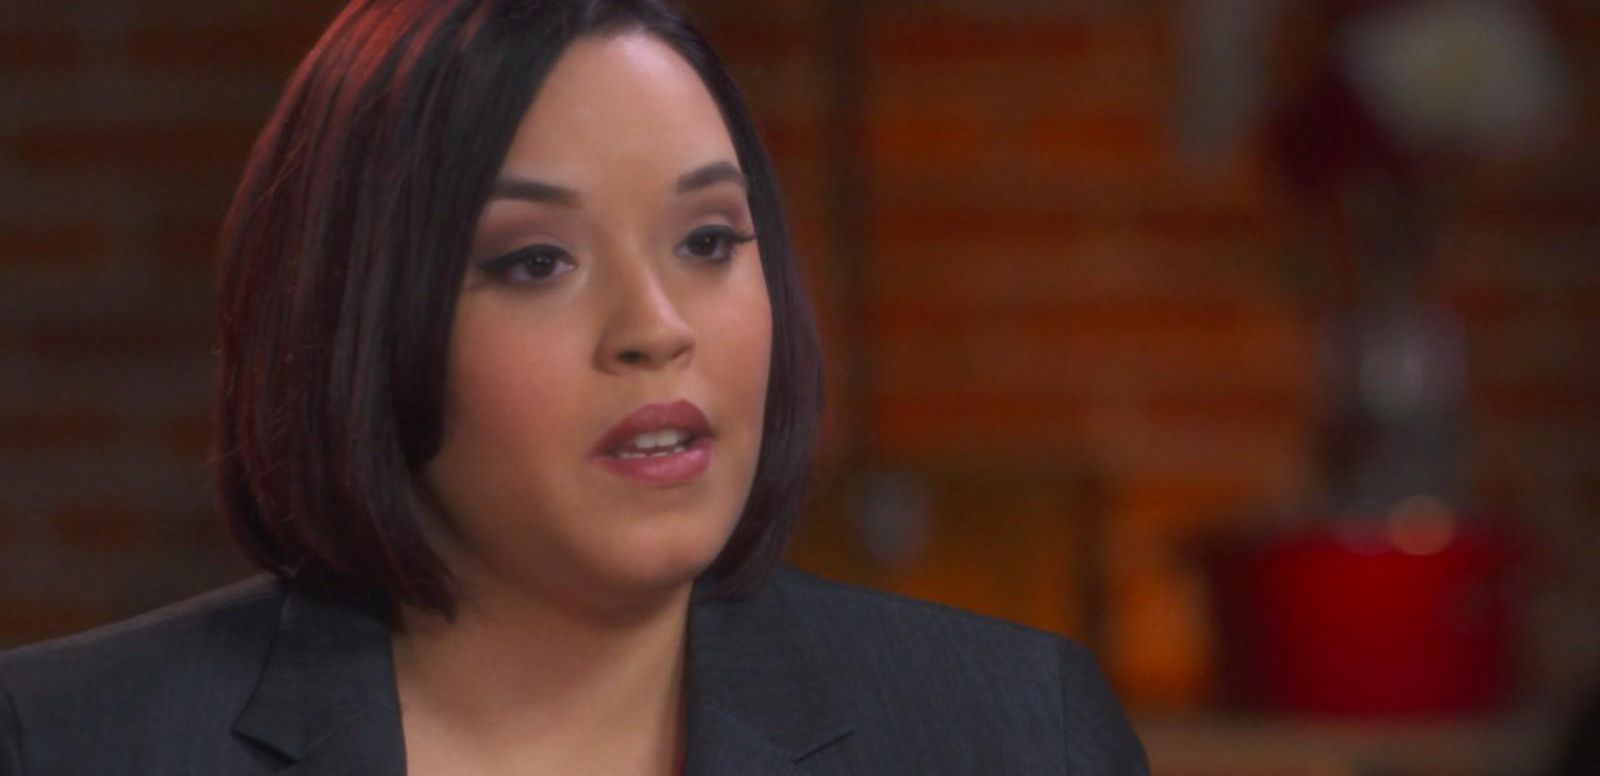 VIDEO: Cleveland Kidnapping Survivors on How They Never Lost Hope